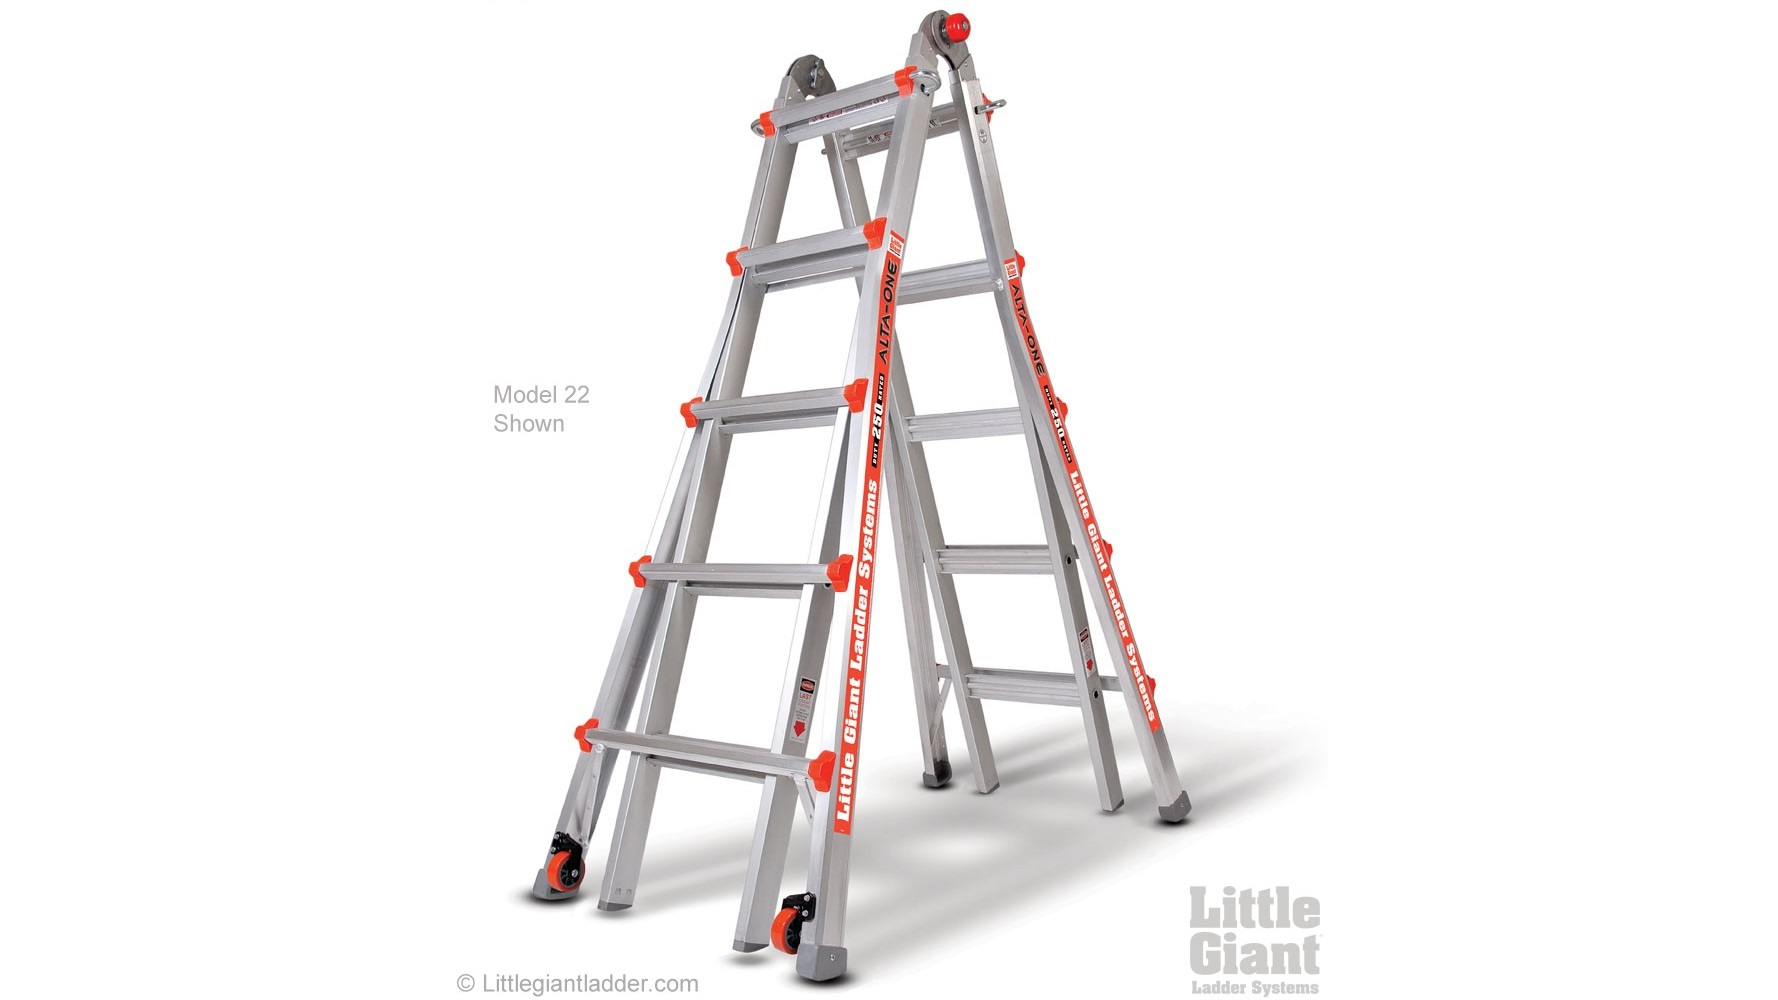 Little Giant Alta-One #22 Ladder